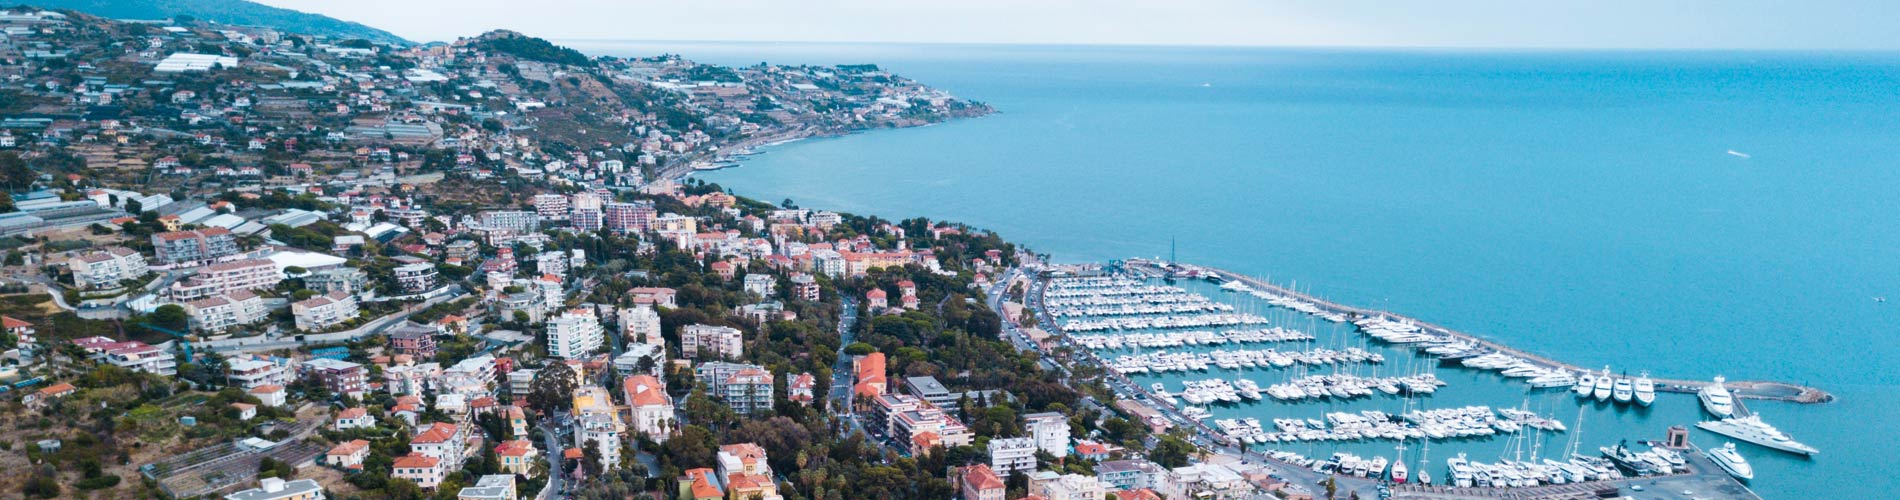 Blog_20for20_SanRemo-Italy_1900x500_Q120